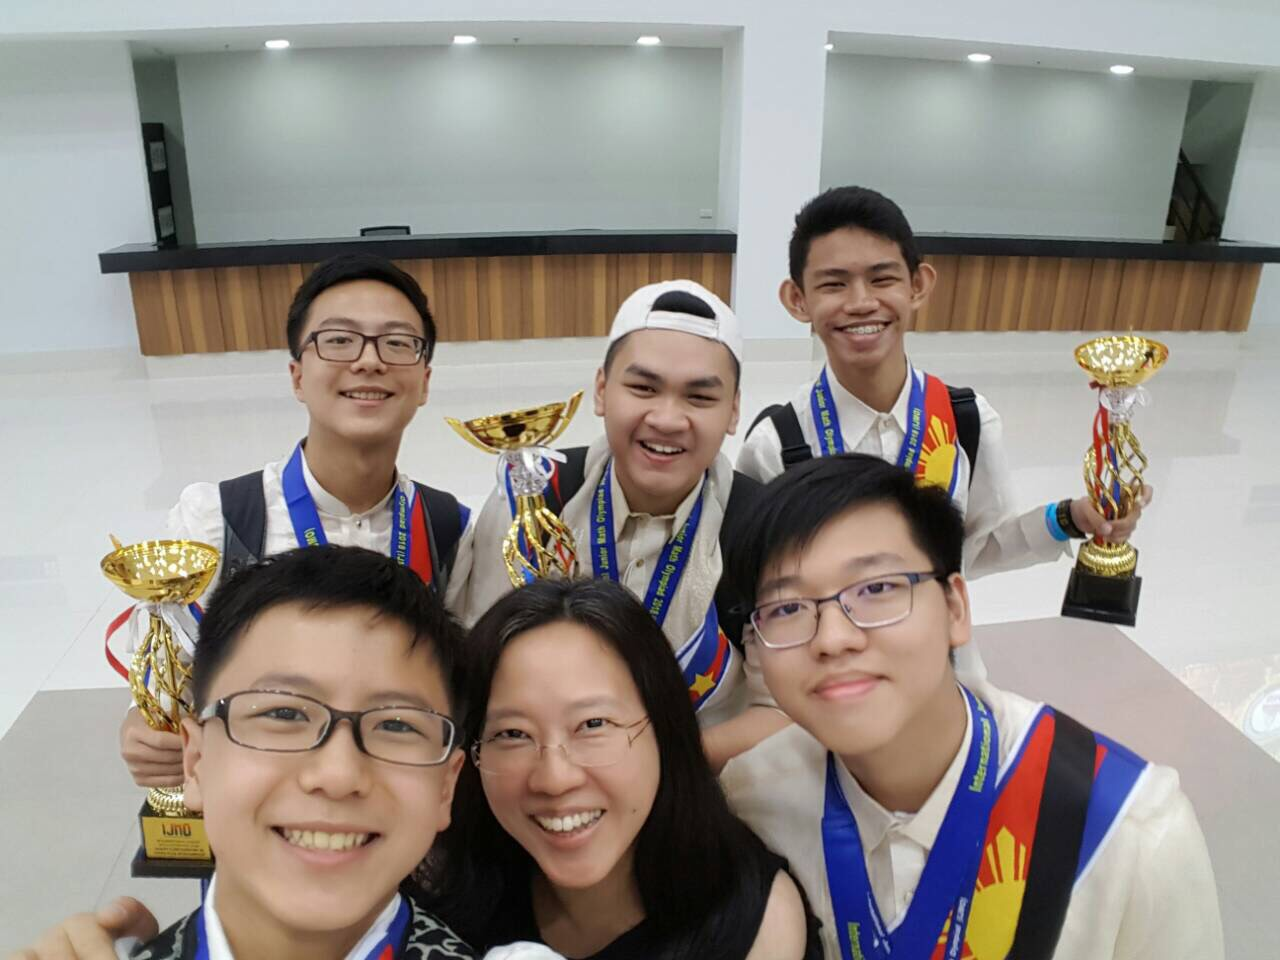 CHAMPIONS. Topnotchers from the Philippine team strike a pose with their trophies. Photo courtesy of Eunice Chua